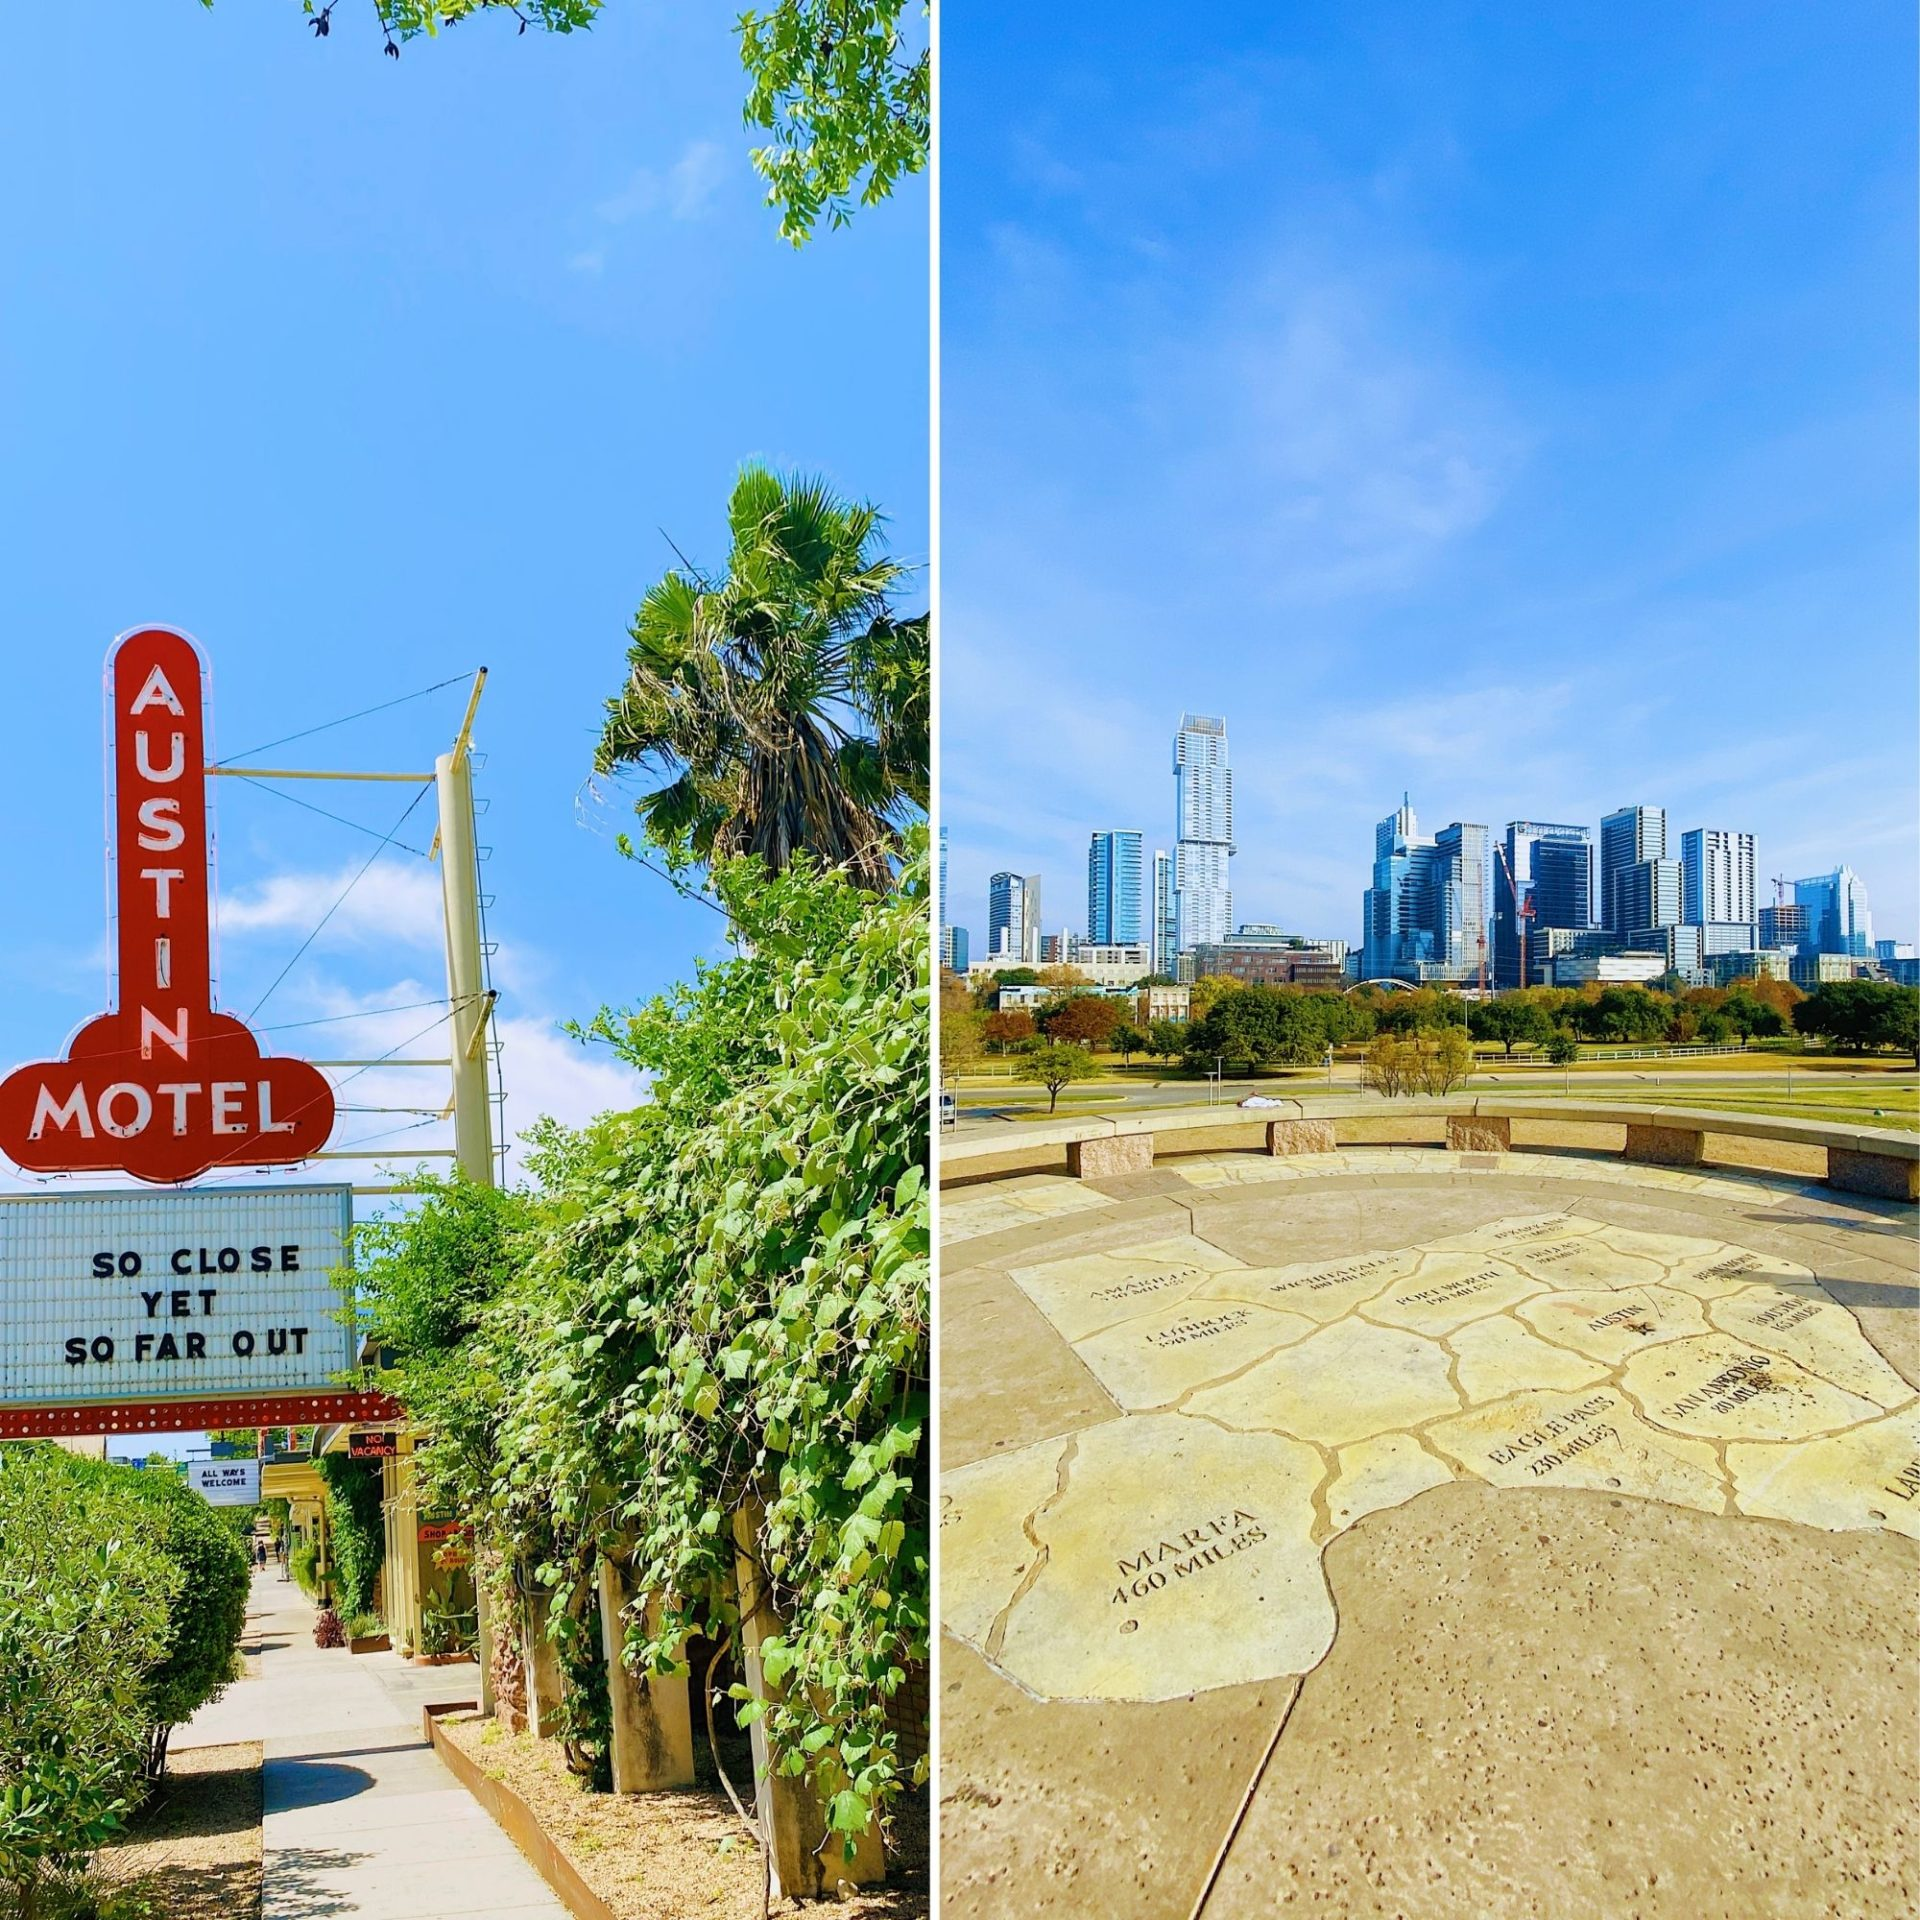 Top 10 Things To Do In Austin Texas